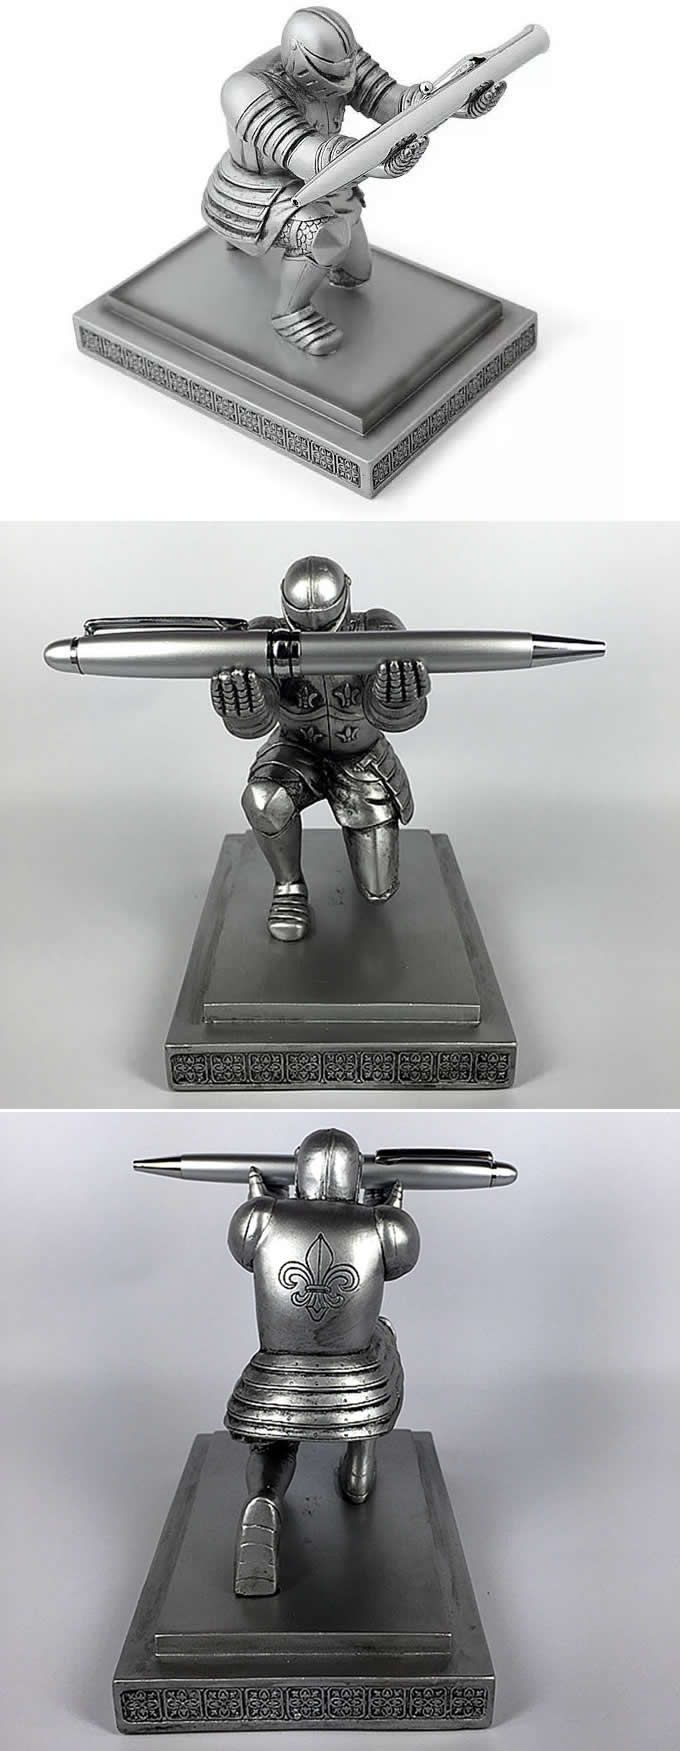 I definitely need one of these for my desk!